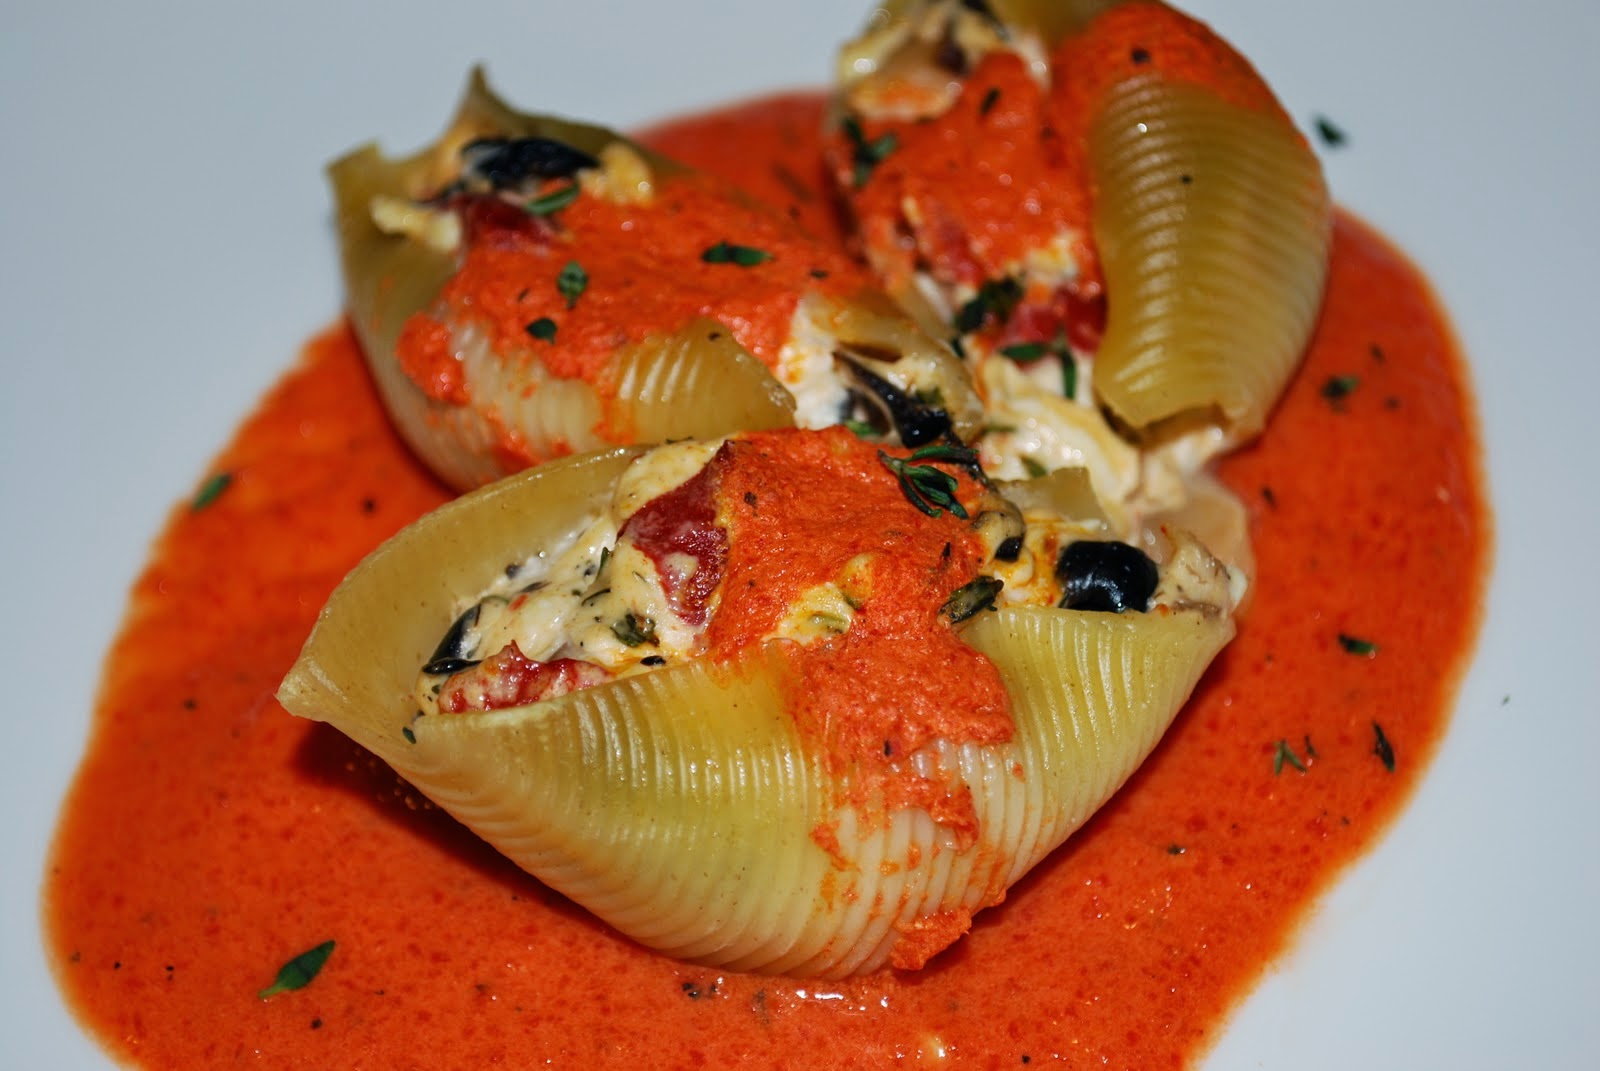 Creamy Crab Stuffed Shells with Roasted Red Pepper Sauce